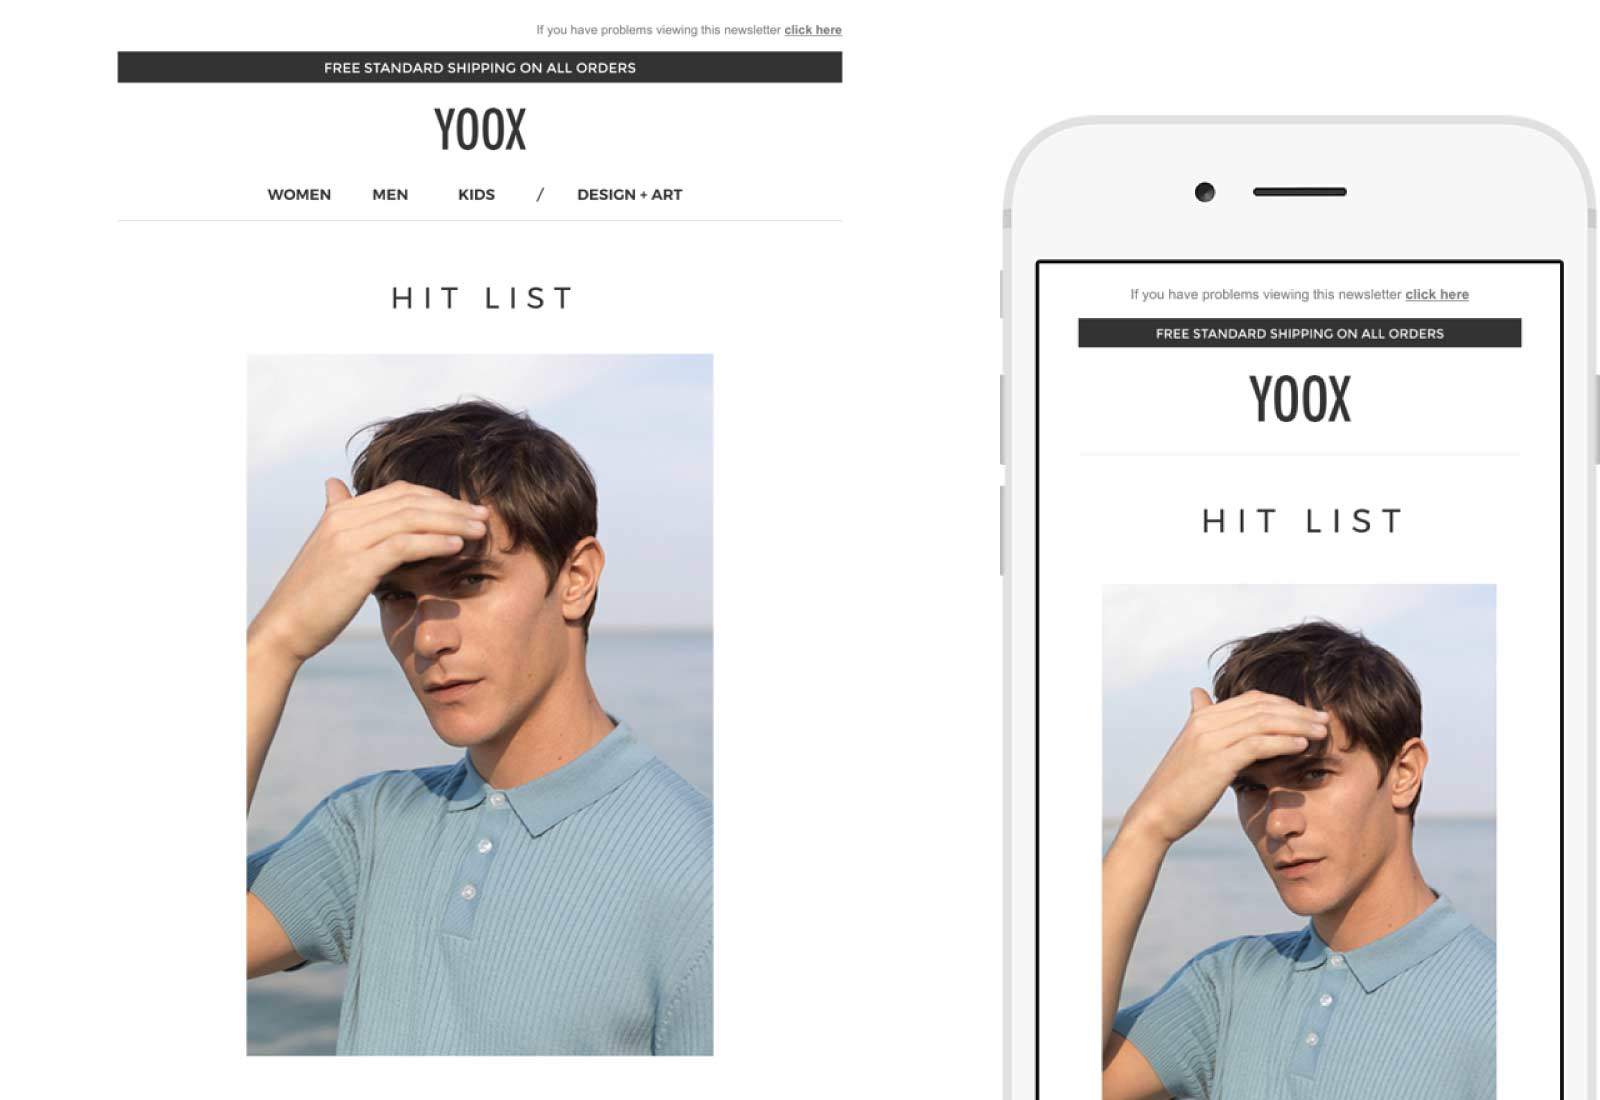 YOOX Email